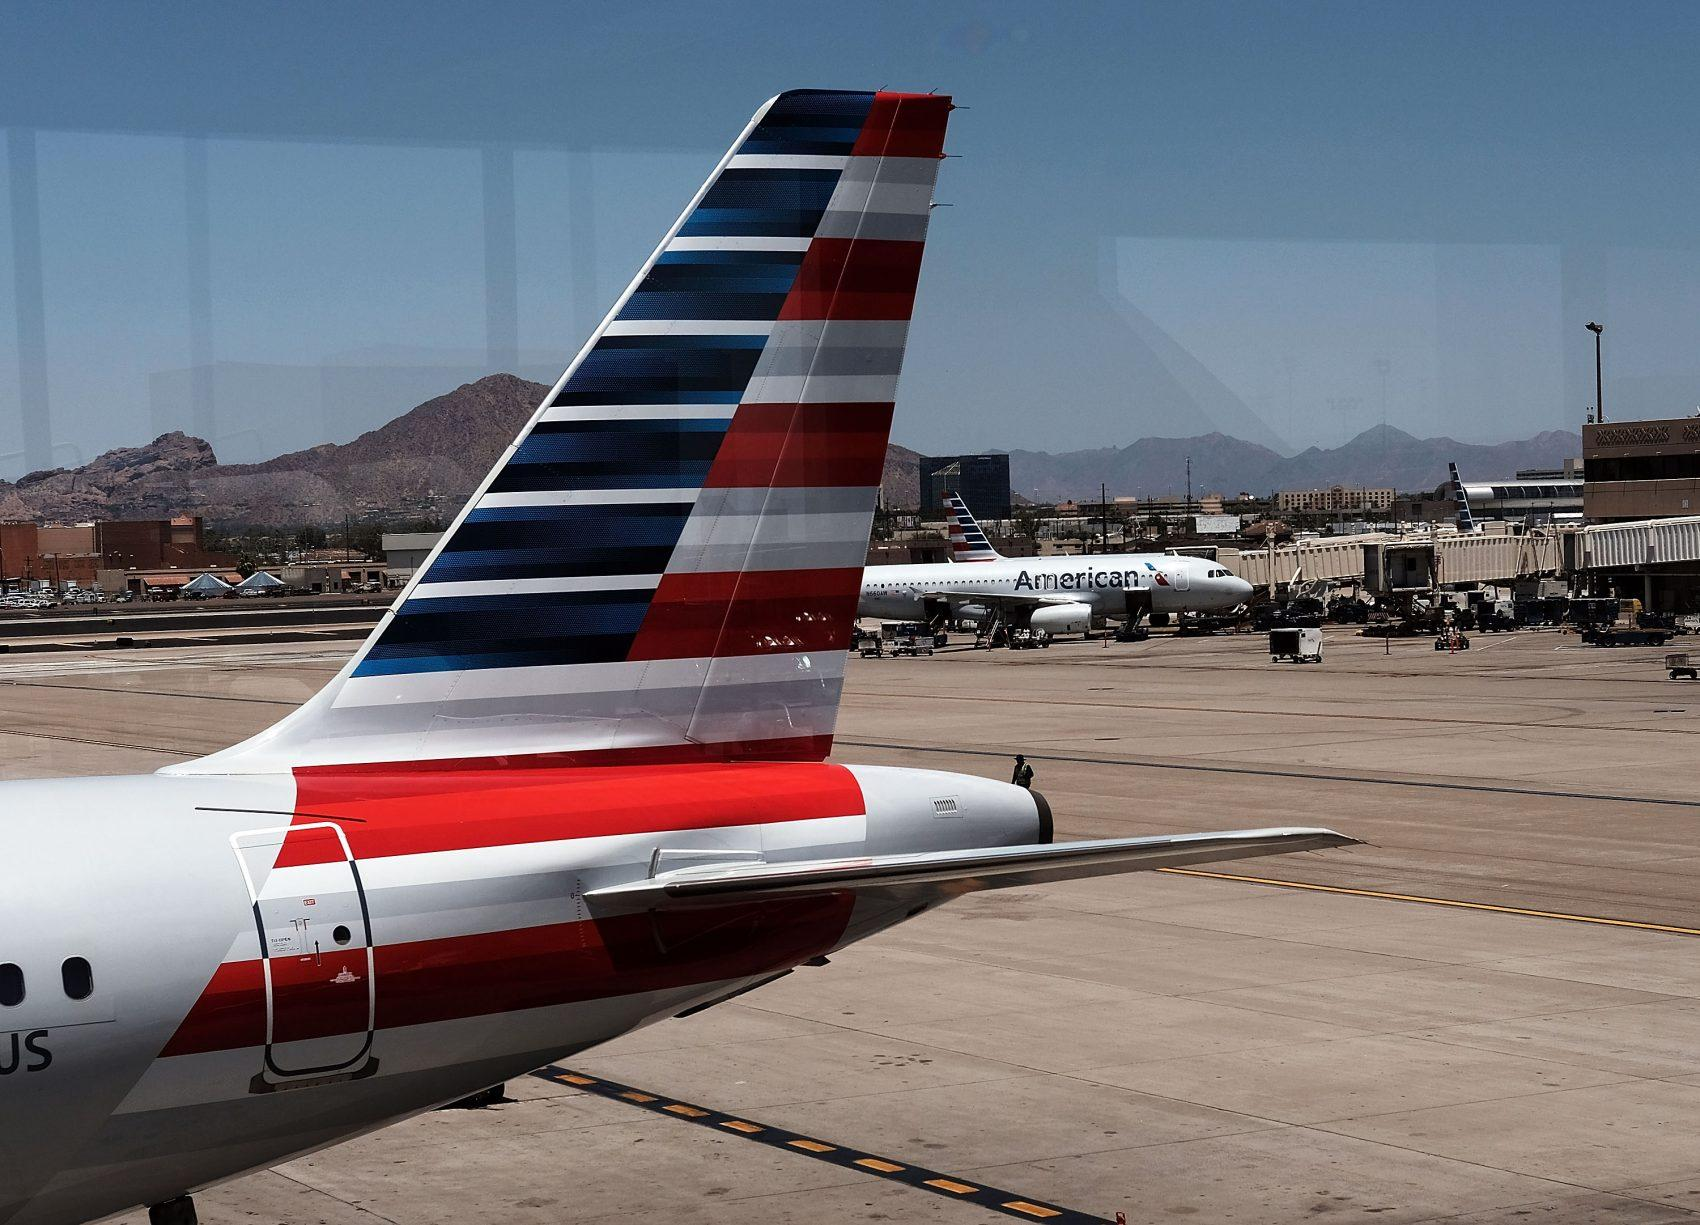 American Airlines flights could be canceled due to computer scheduling glitch